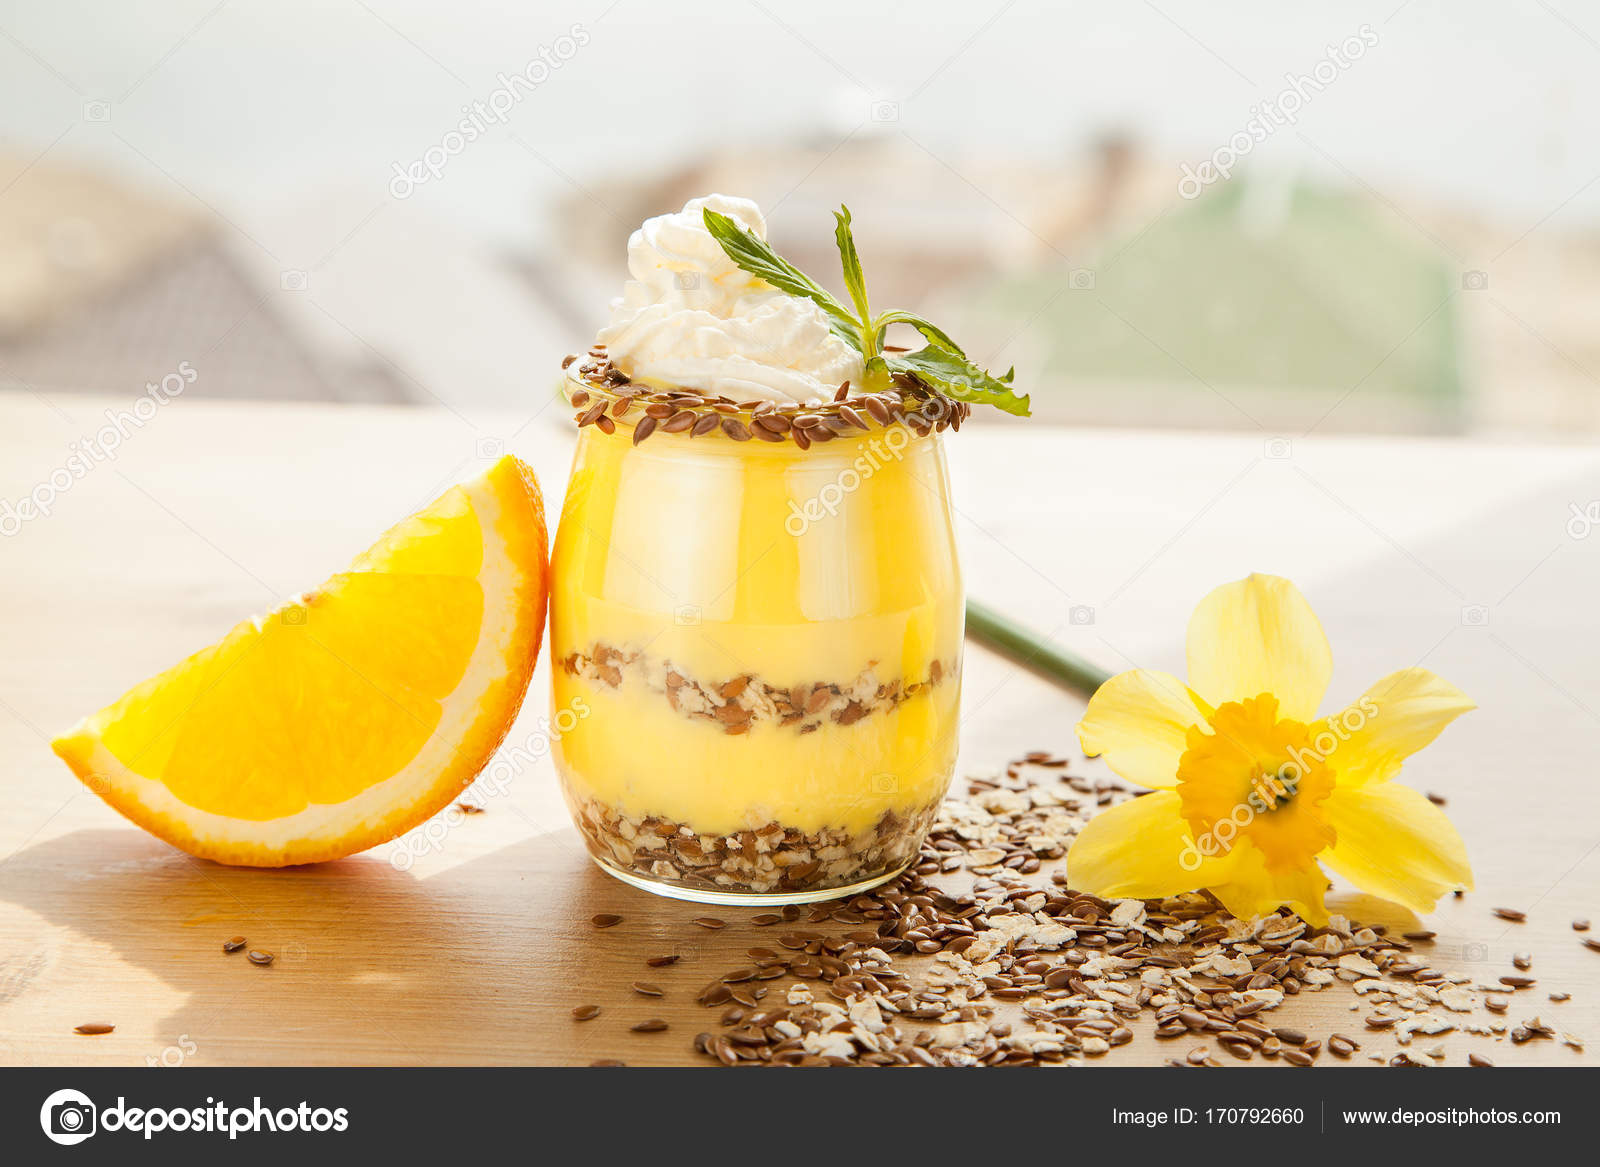 Diat Orange Niedrigen Zucker Pudding Stockfoto C Dturphoto 170792660